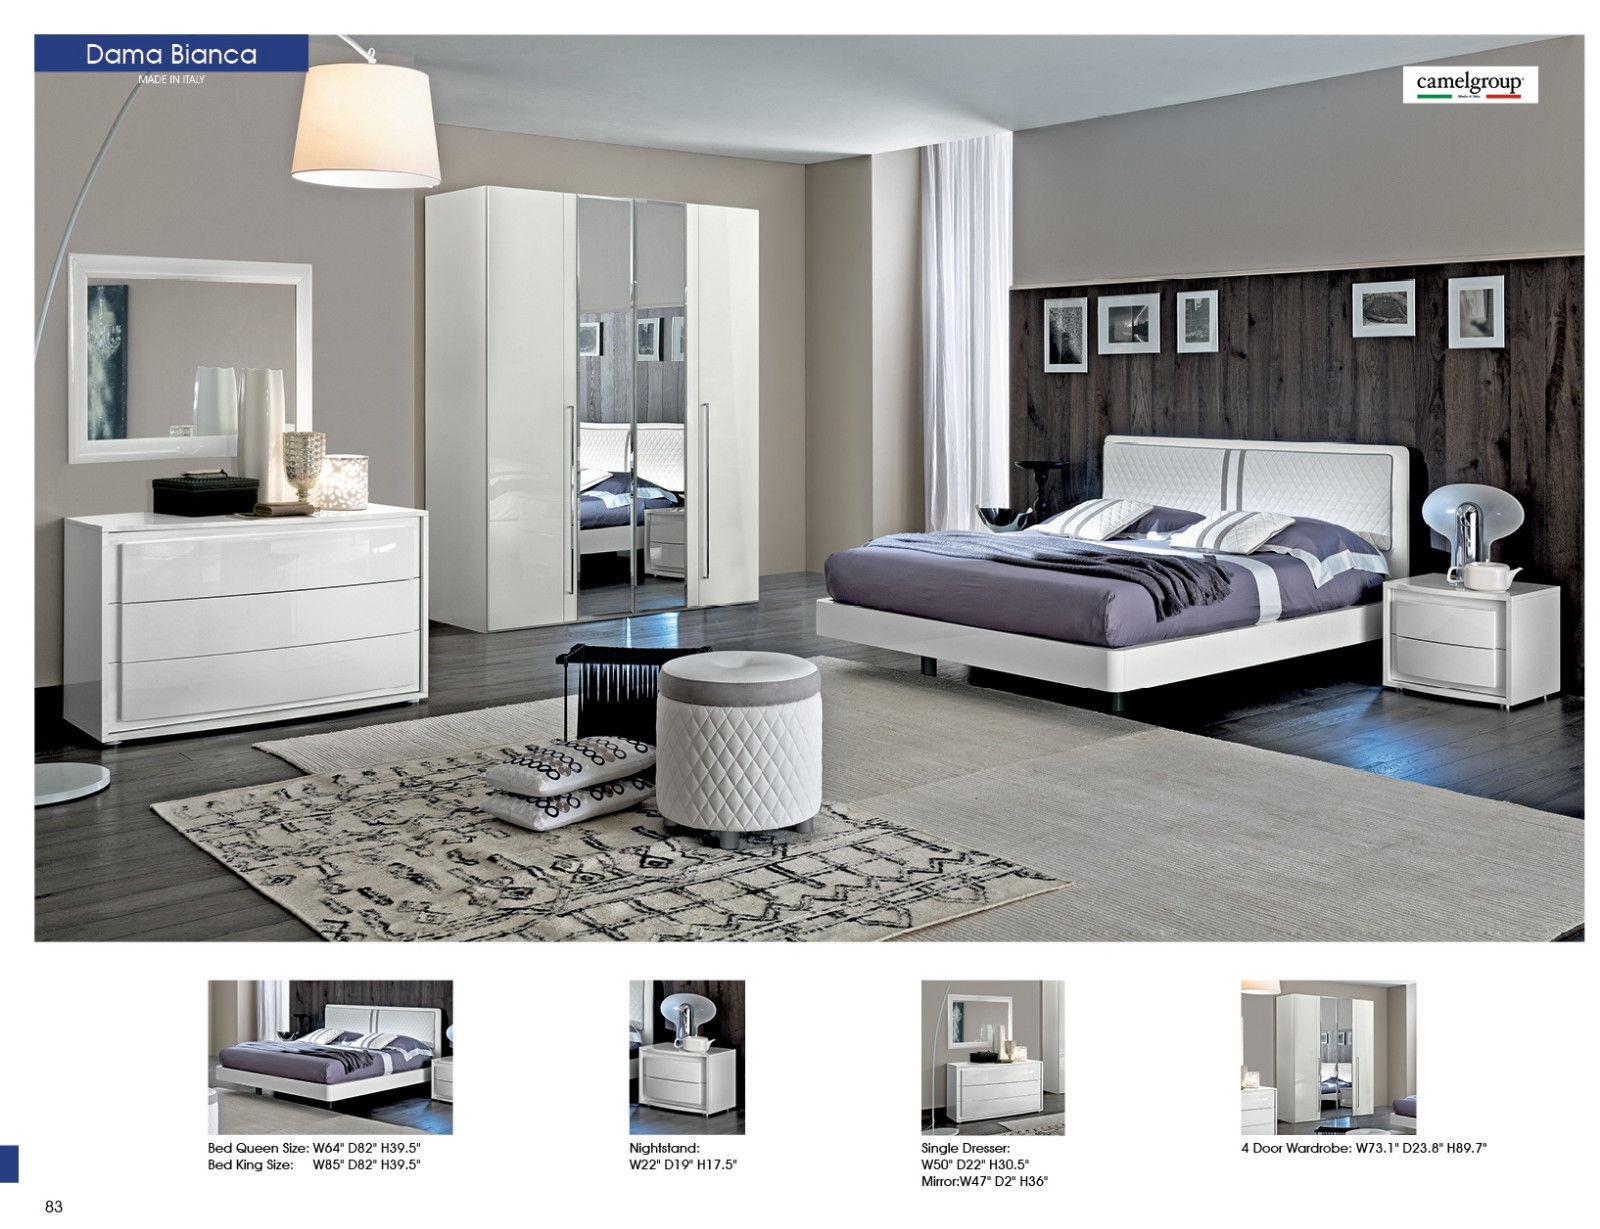 ESF Dama Bianca King Size Bedroom Set 5pc. Chic Contemporary Modern Style